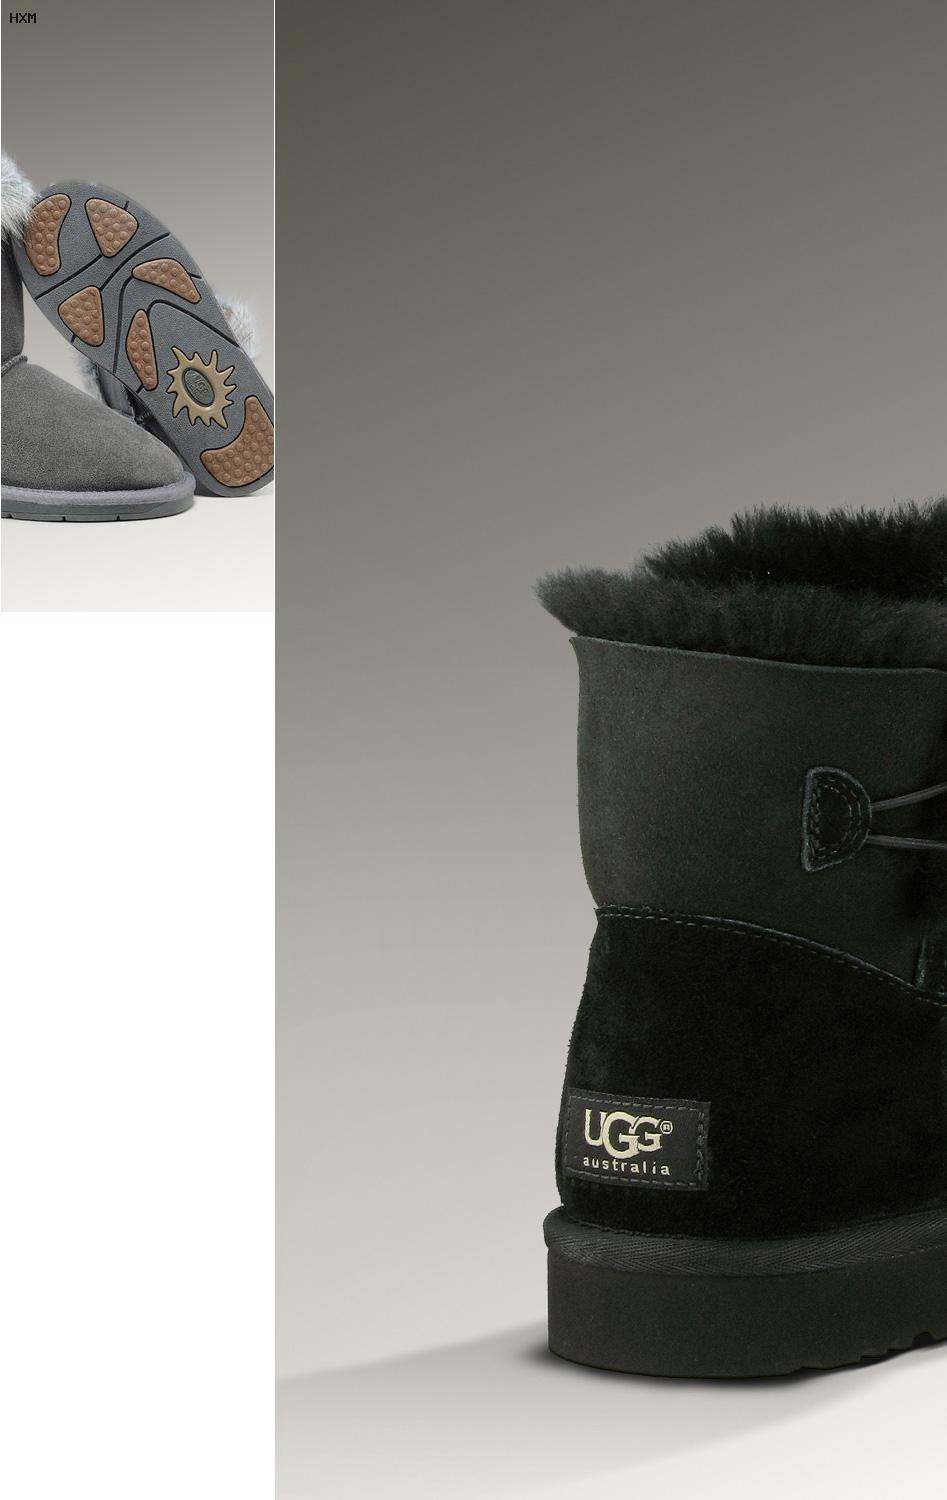 best cheap ugg style boots